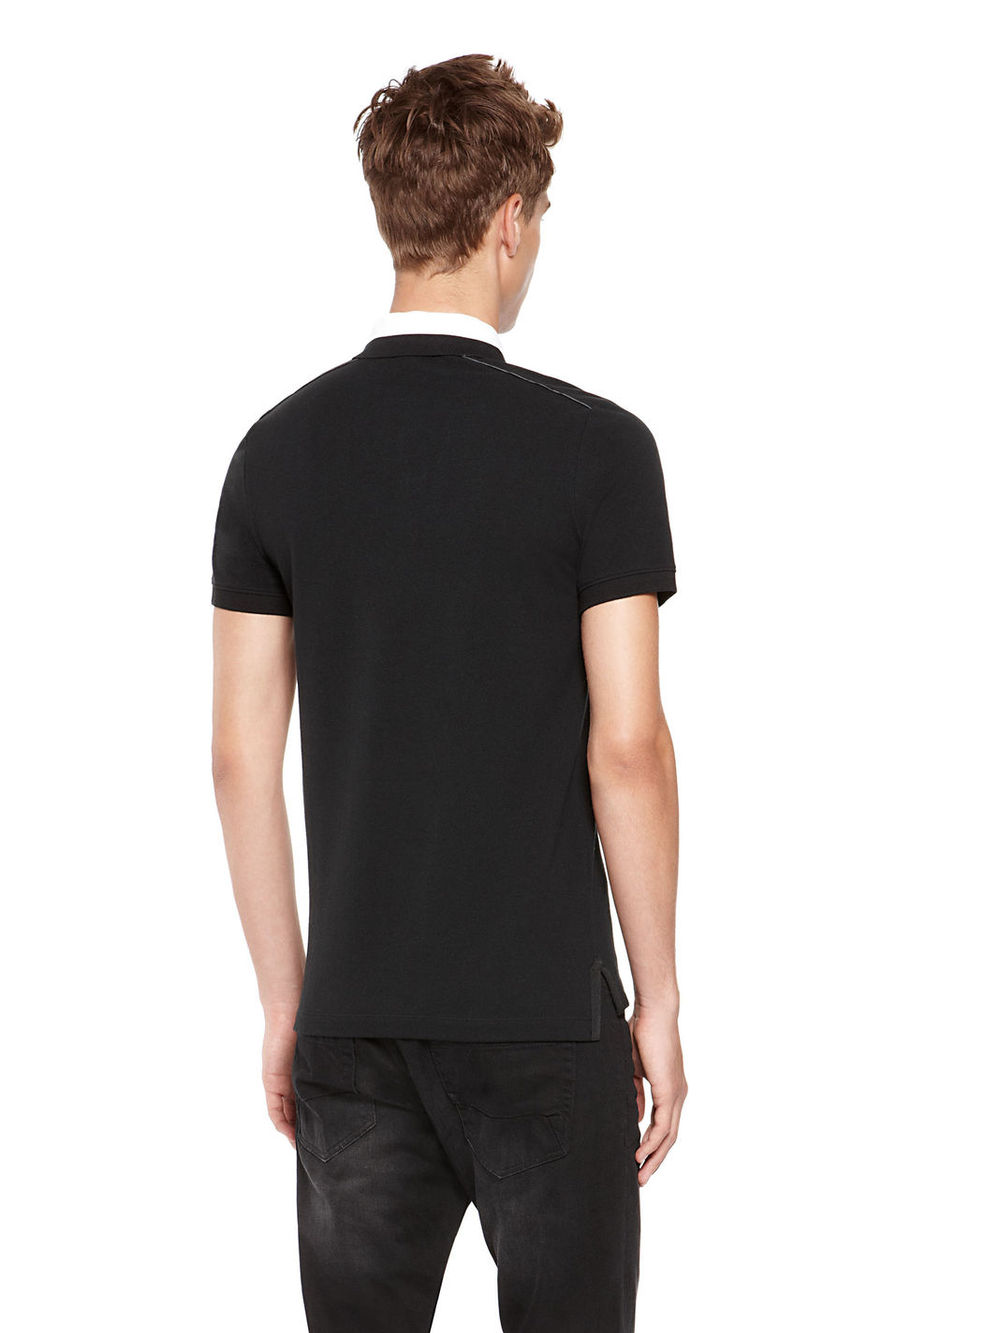 Black t shirt with white collar - Black Plain White Collar Wholesale Polo Shirt